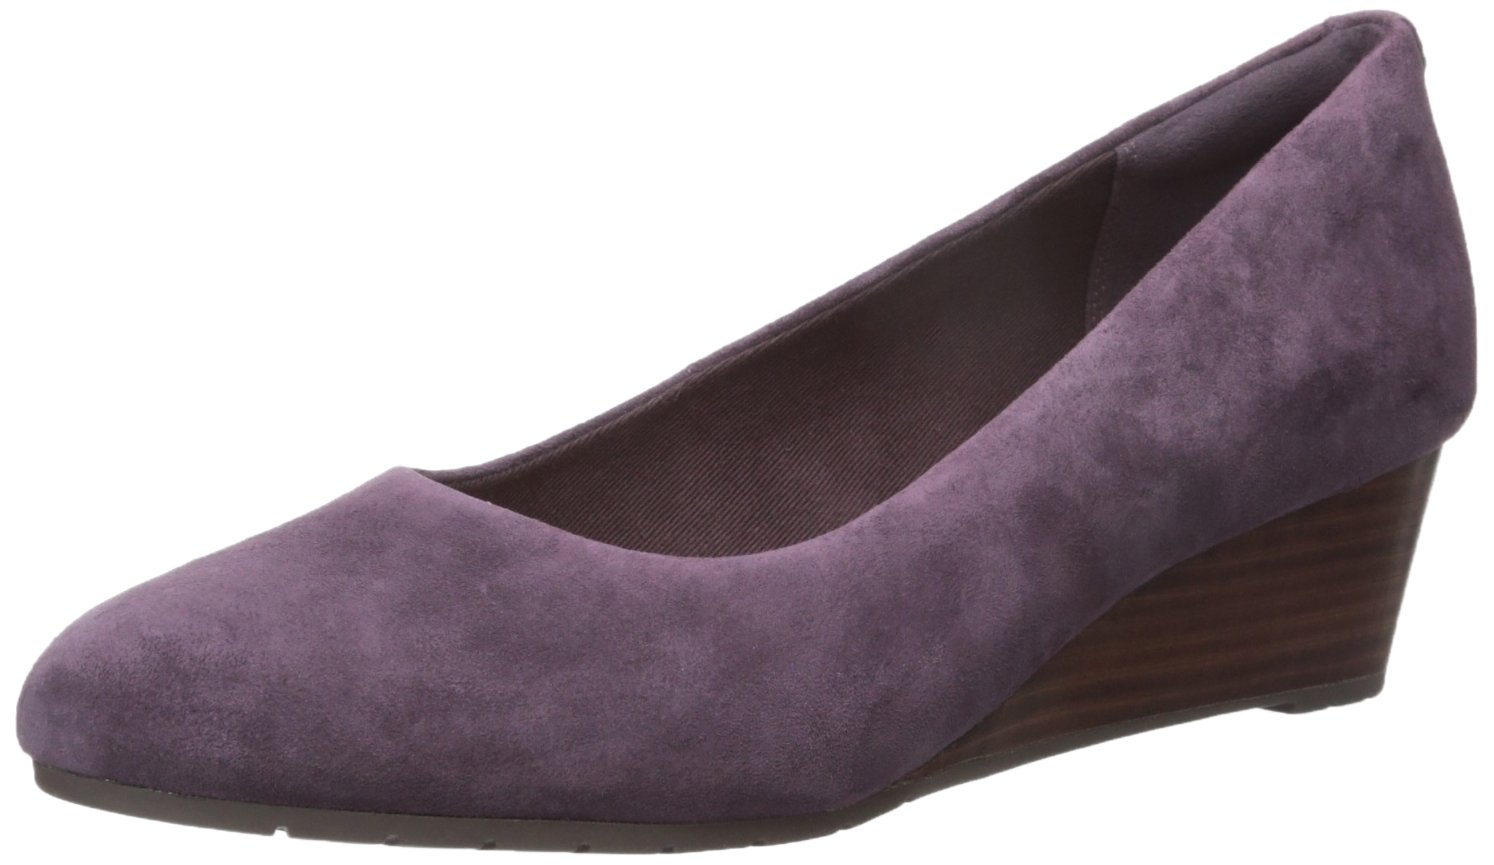 CLARKS Women's Vendra Bloom Wedge Pump B01NALHYYH 11 W US|Vendra Bloom Aubergine Suede